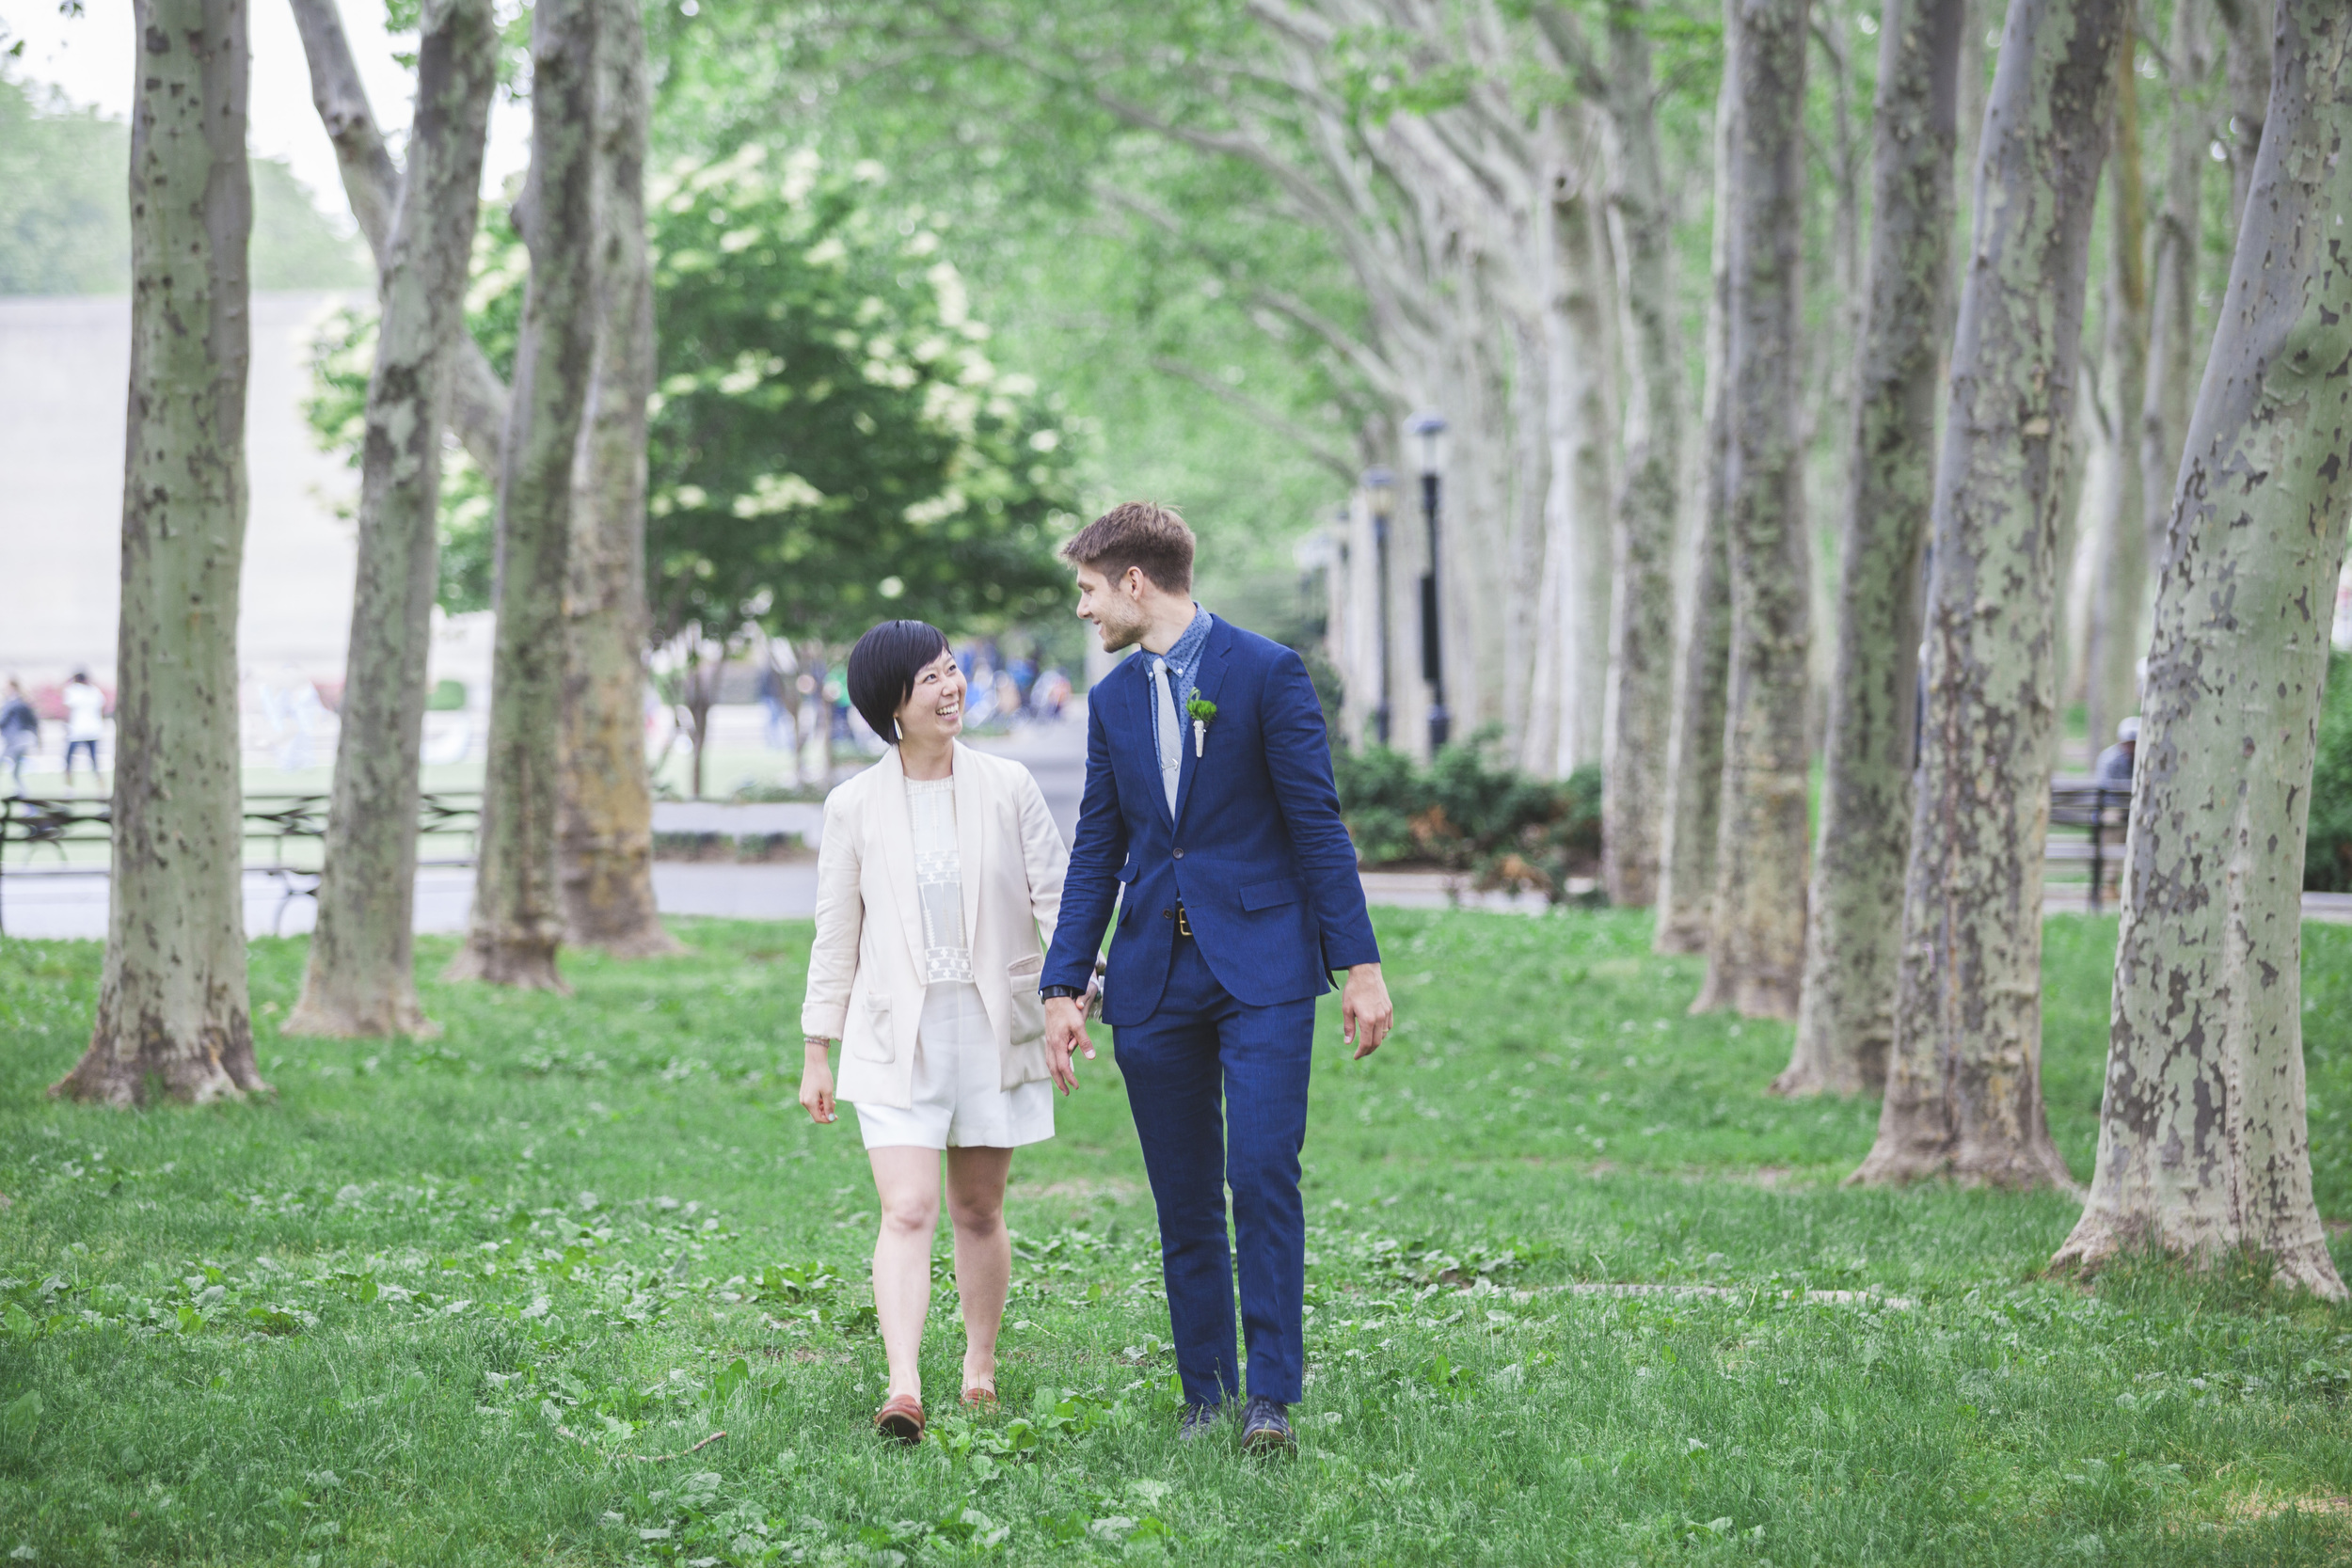 Walking over to the Brooklyn Bride through the park.